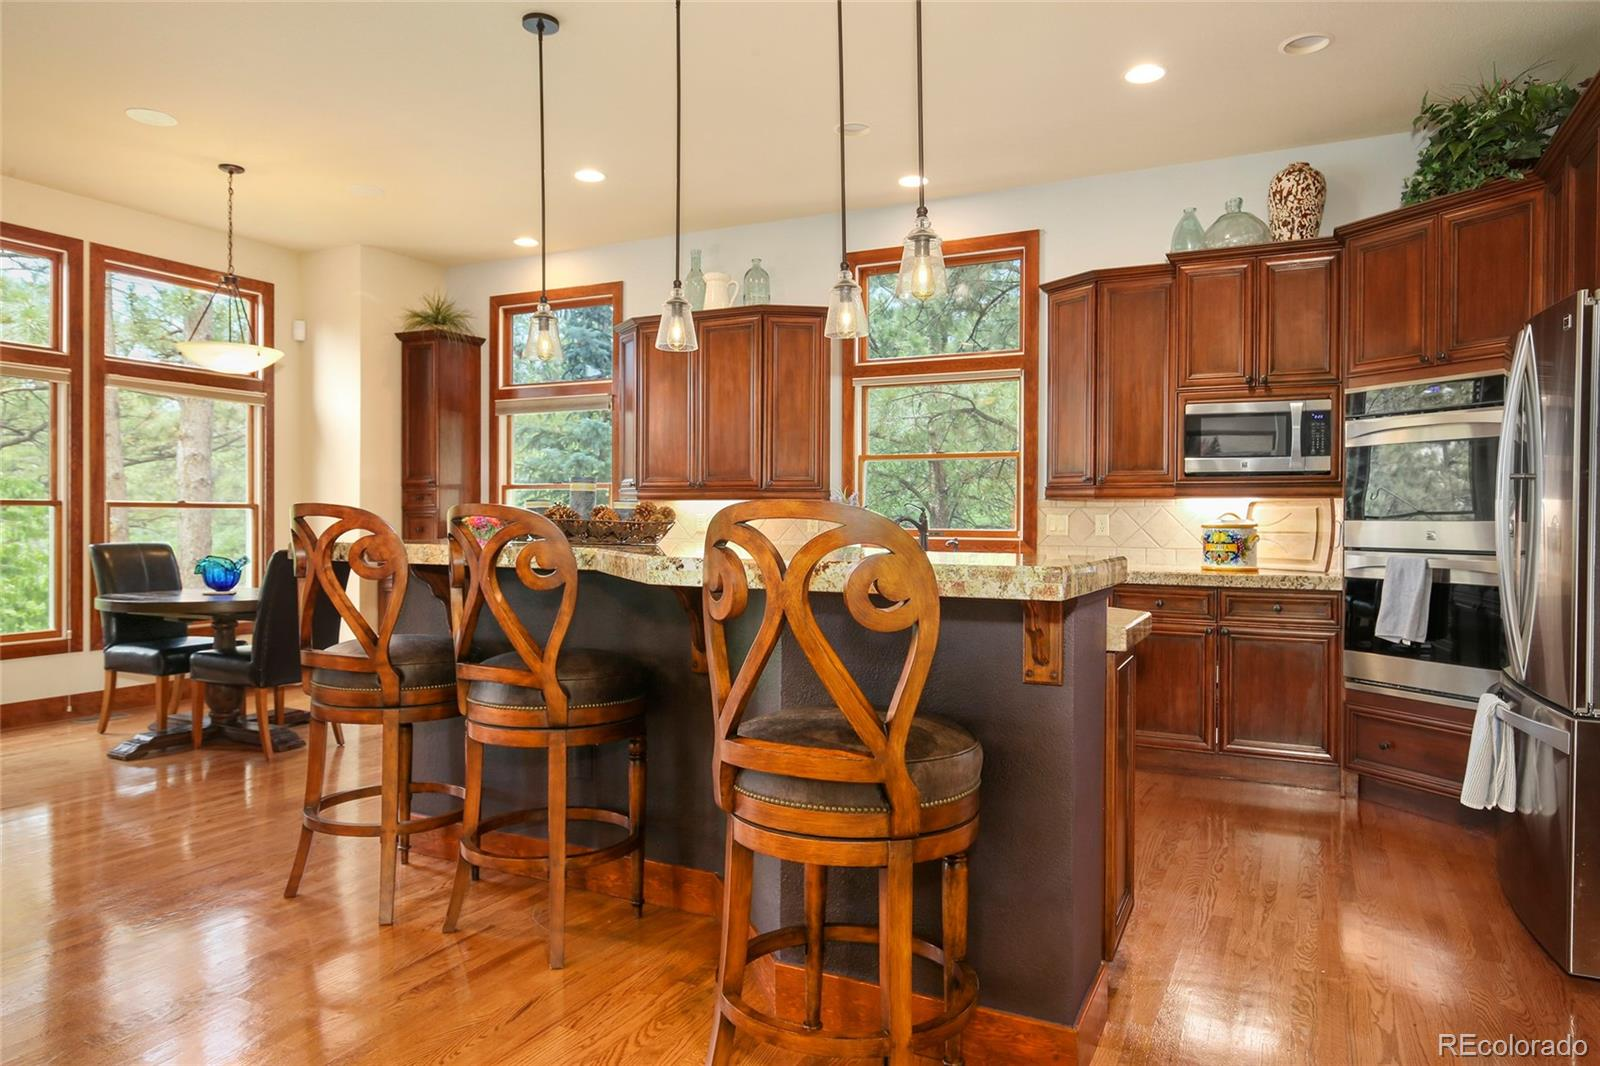 MLS# 8150320 - 10 - 1198 Forest Trails Drive, Castle Pines, CO 80108